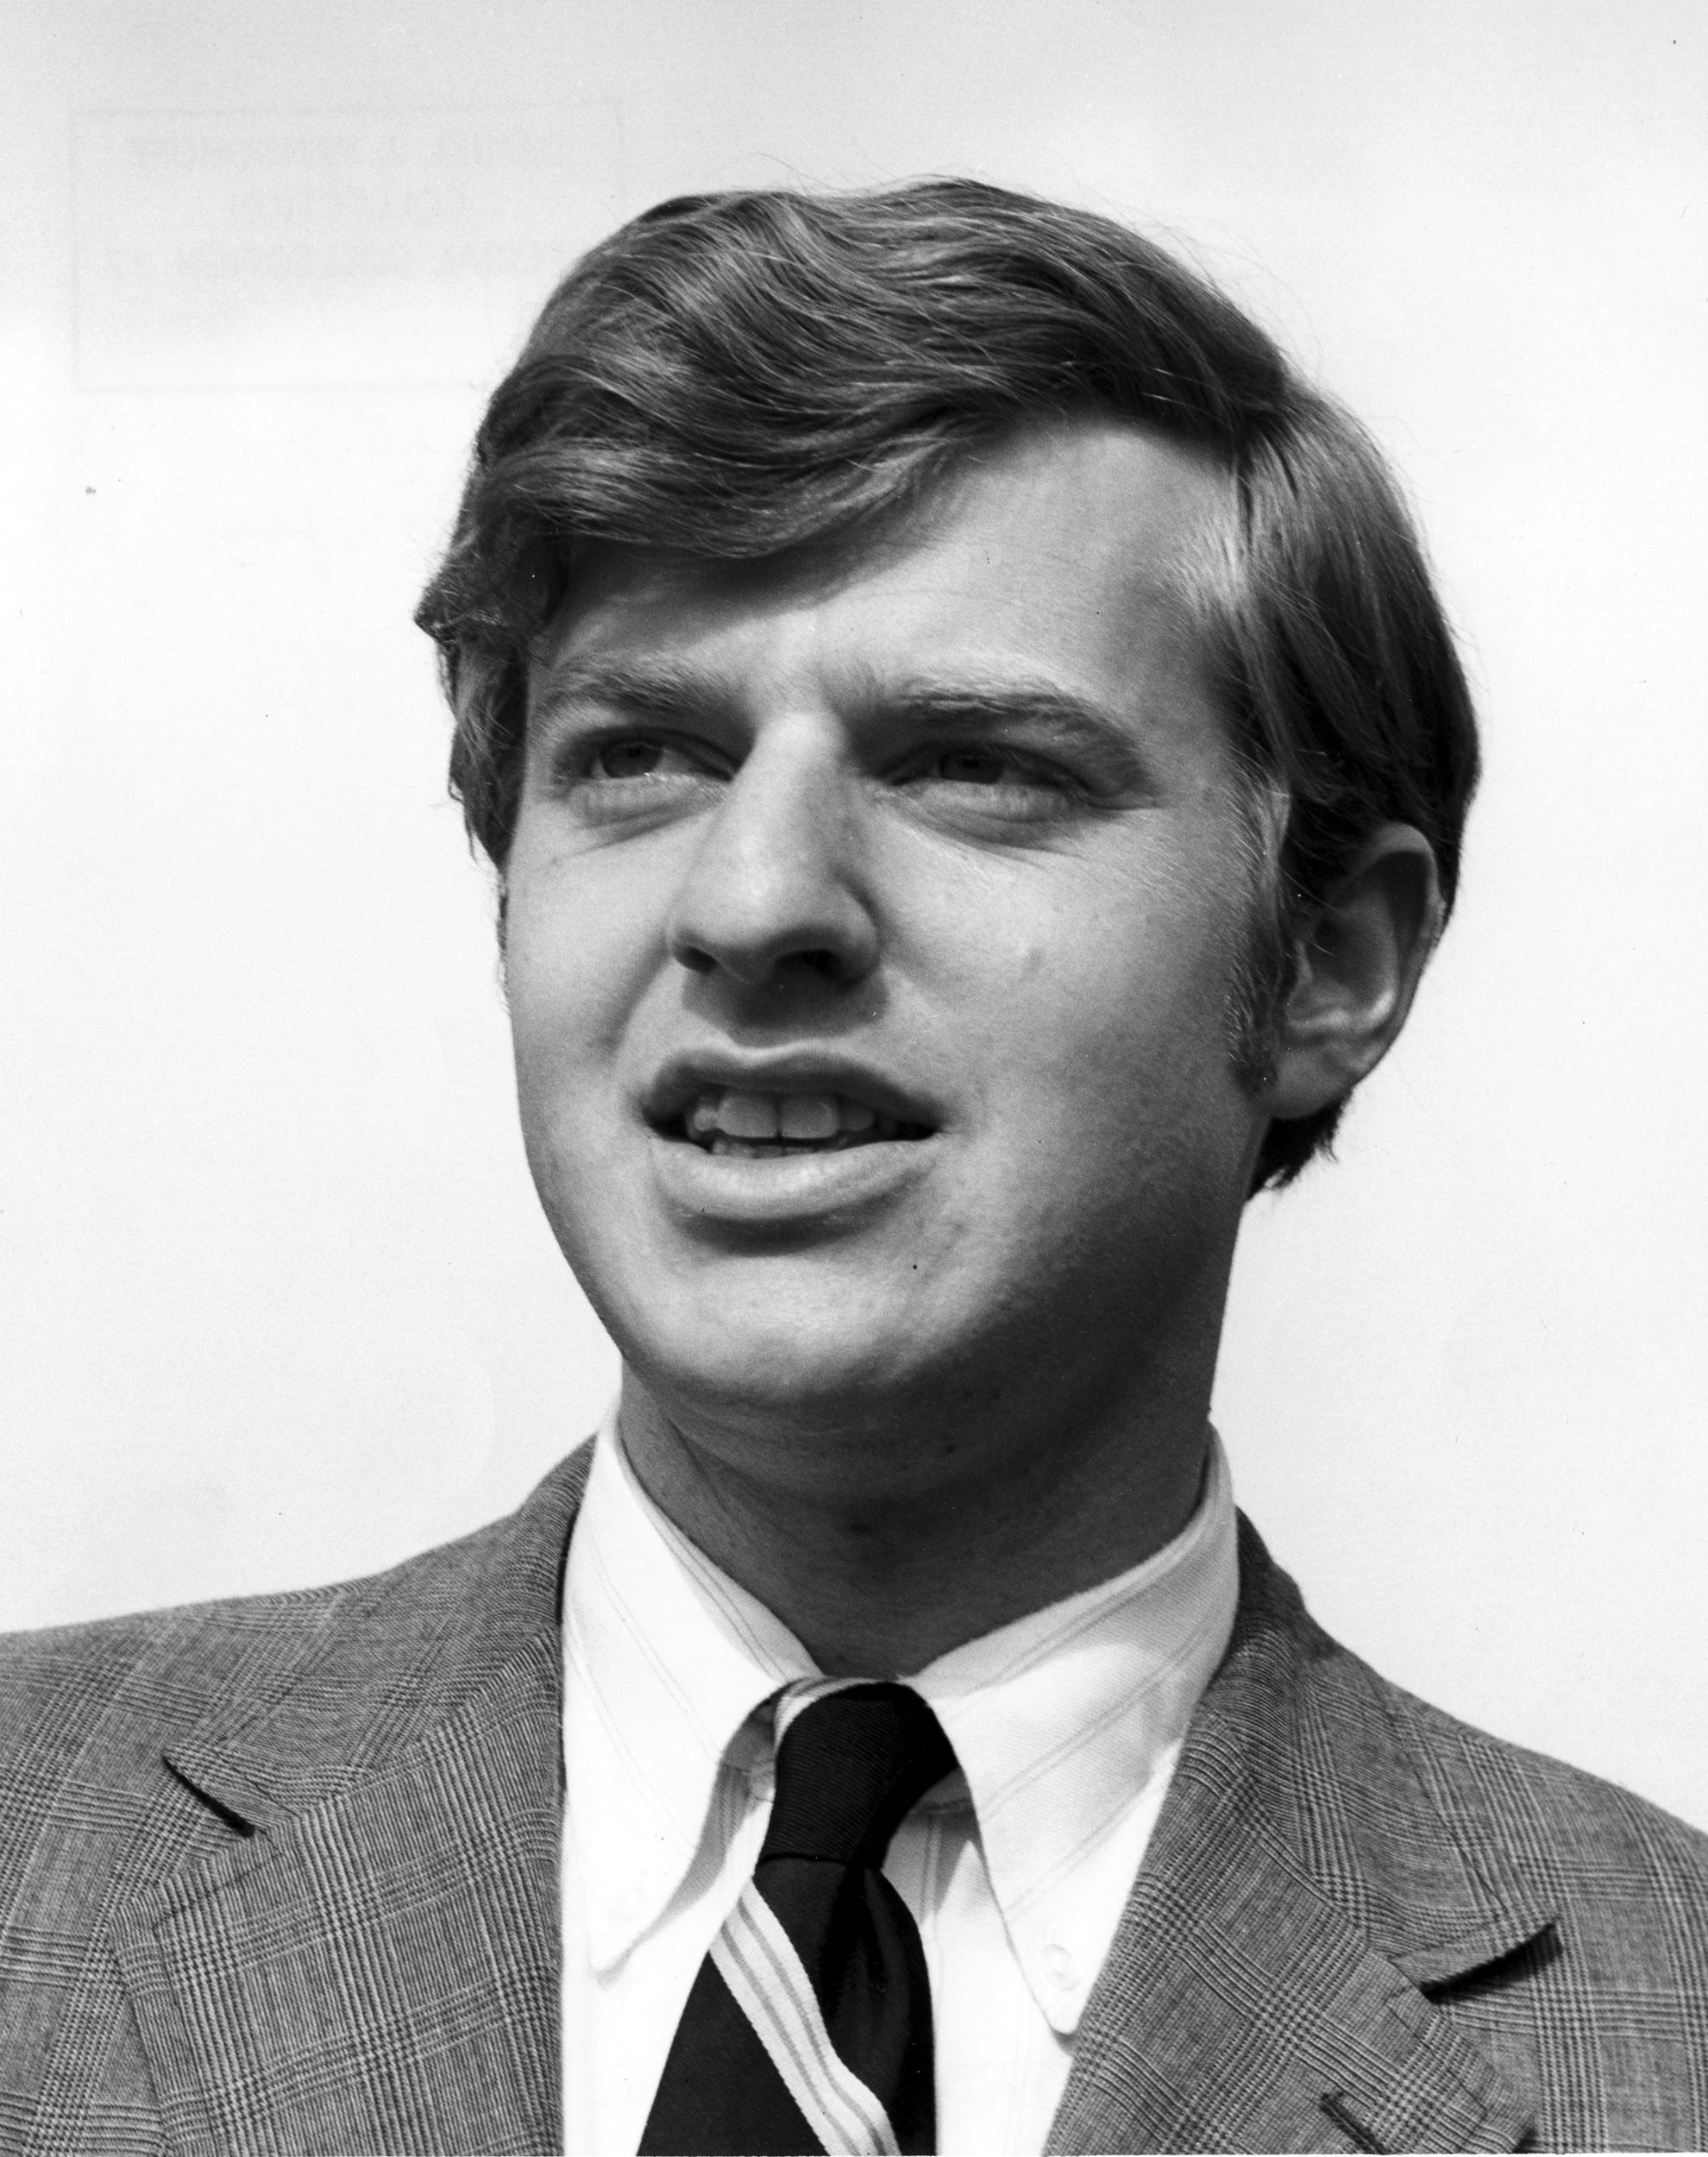 Portrait of Jerry Springer, lawyer turned talk show host, wearing a jacket and tie, Cincinnati, OH, ca 1970. Springer was a Cincinnati councilman and mayor of Cincinnati. (Photo by Daniel J. Ransohoff/Cincinnati Museum Center/Getty Images)